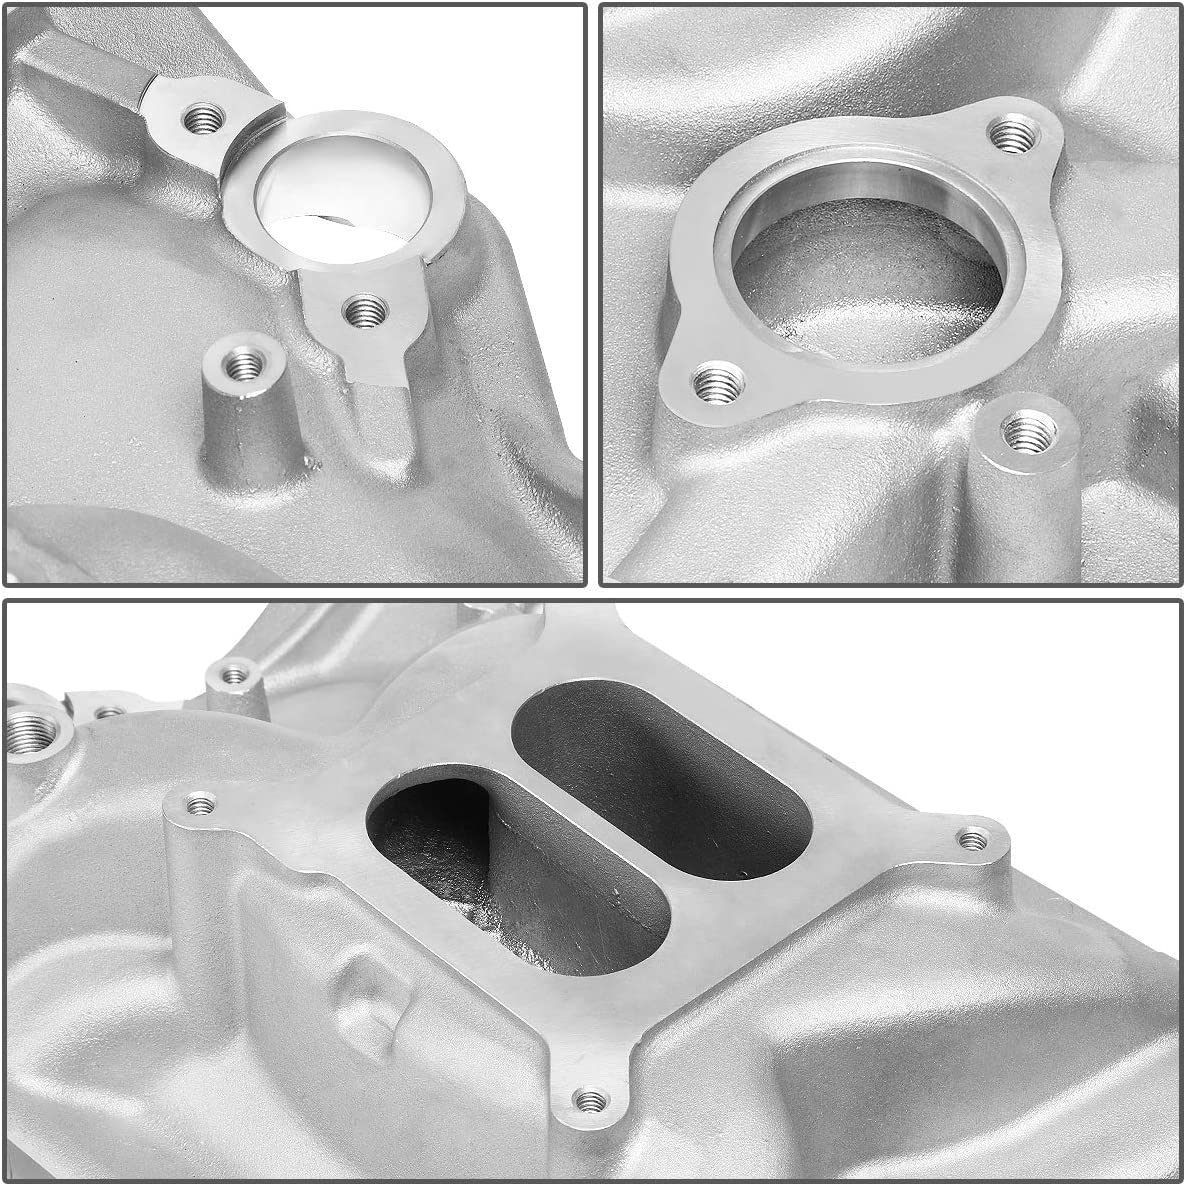 DNA MOTORING Metallic LEPOW-009 Dual Plane Aluminum Intake Manifold Assembly for 96-02 Chevy SBC 5.0L 5.7L